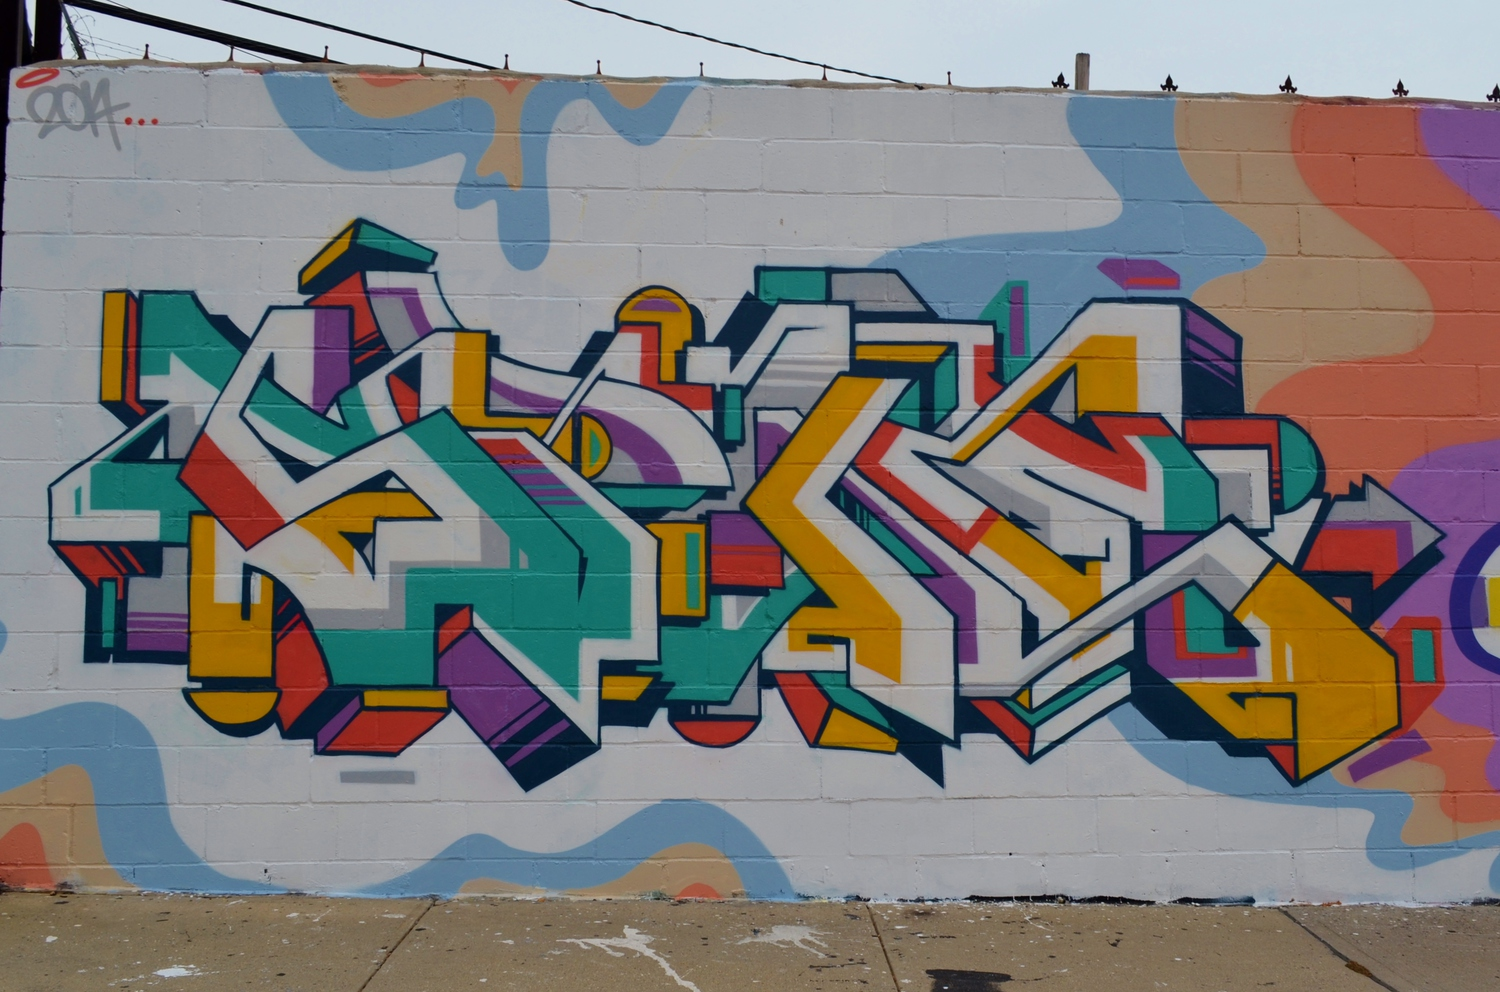 Welling Court: Gregg Lamarche, 9.21.14 | A visit to the Welling Court Mural Project in Queens on 9.21.14. With 5 Pointz gone, Welling Court has become the new graffiti center in the borough. I'll try to include the individual artists, great talent/ work from everyone.